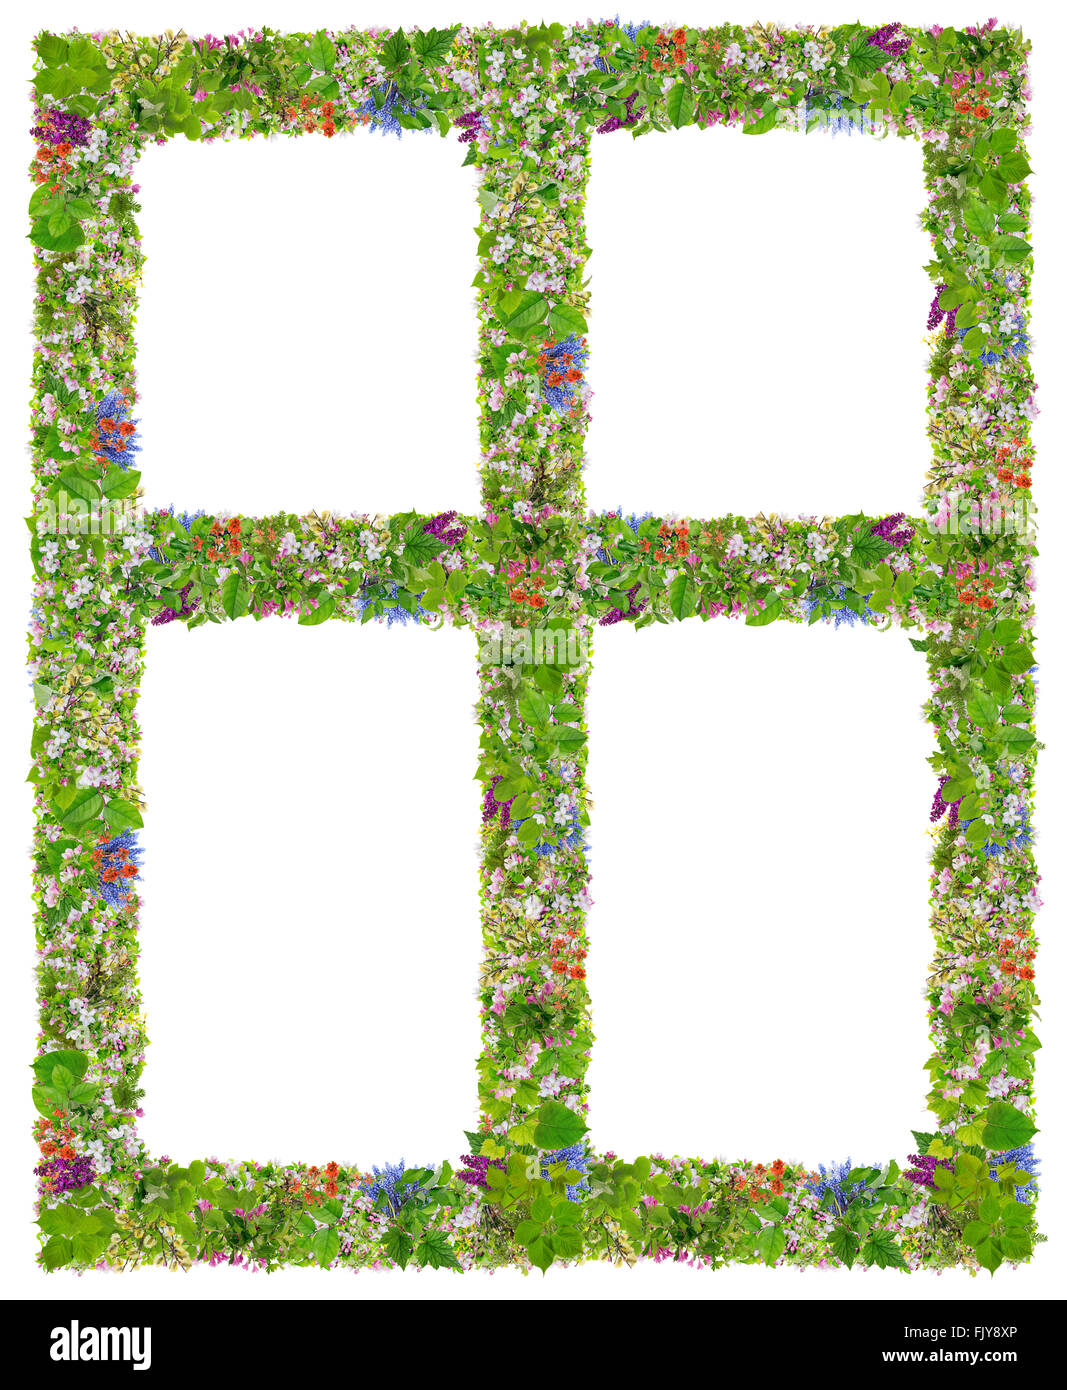 Green Spreng Eco windows frame abstract collage made from